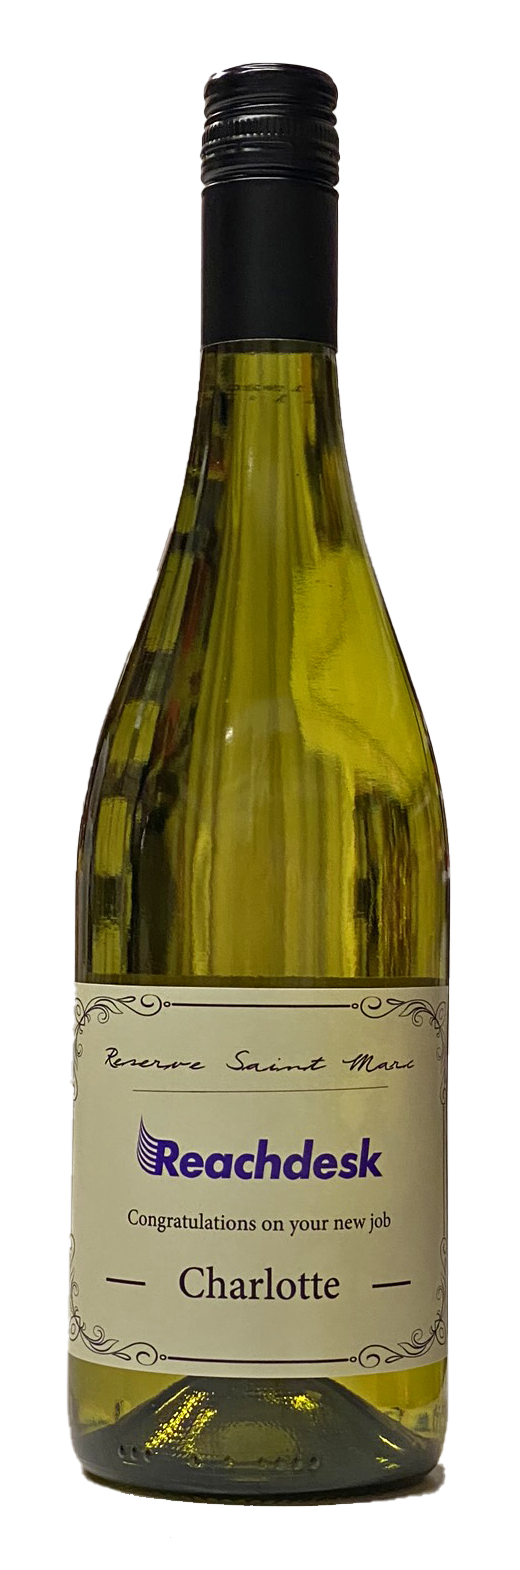 Corporate Branded White Wine Bottle - Languedoc, Southern France